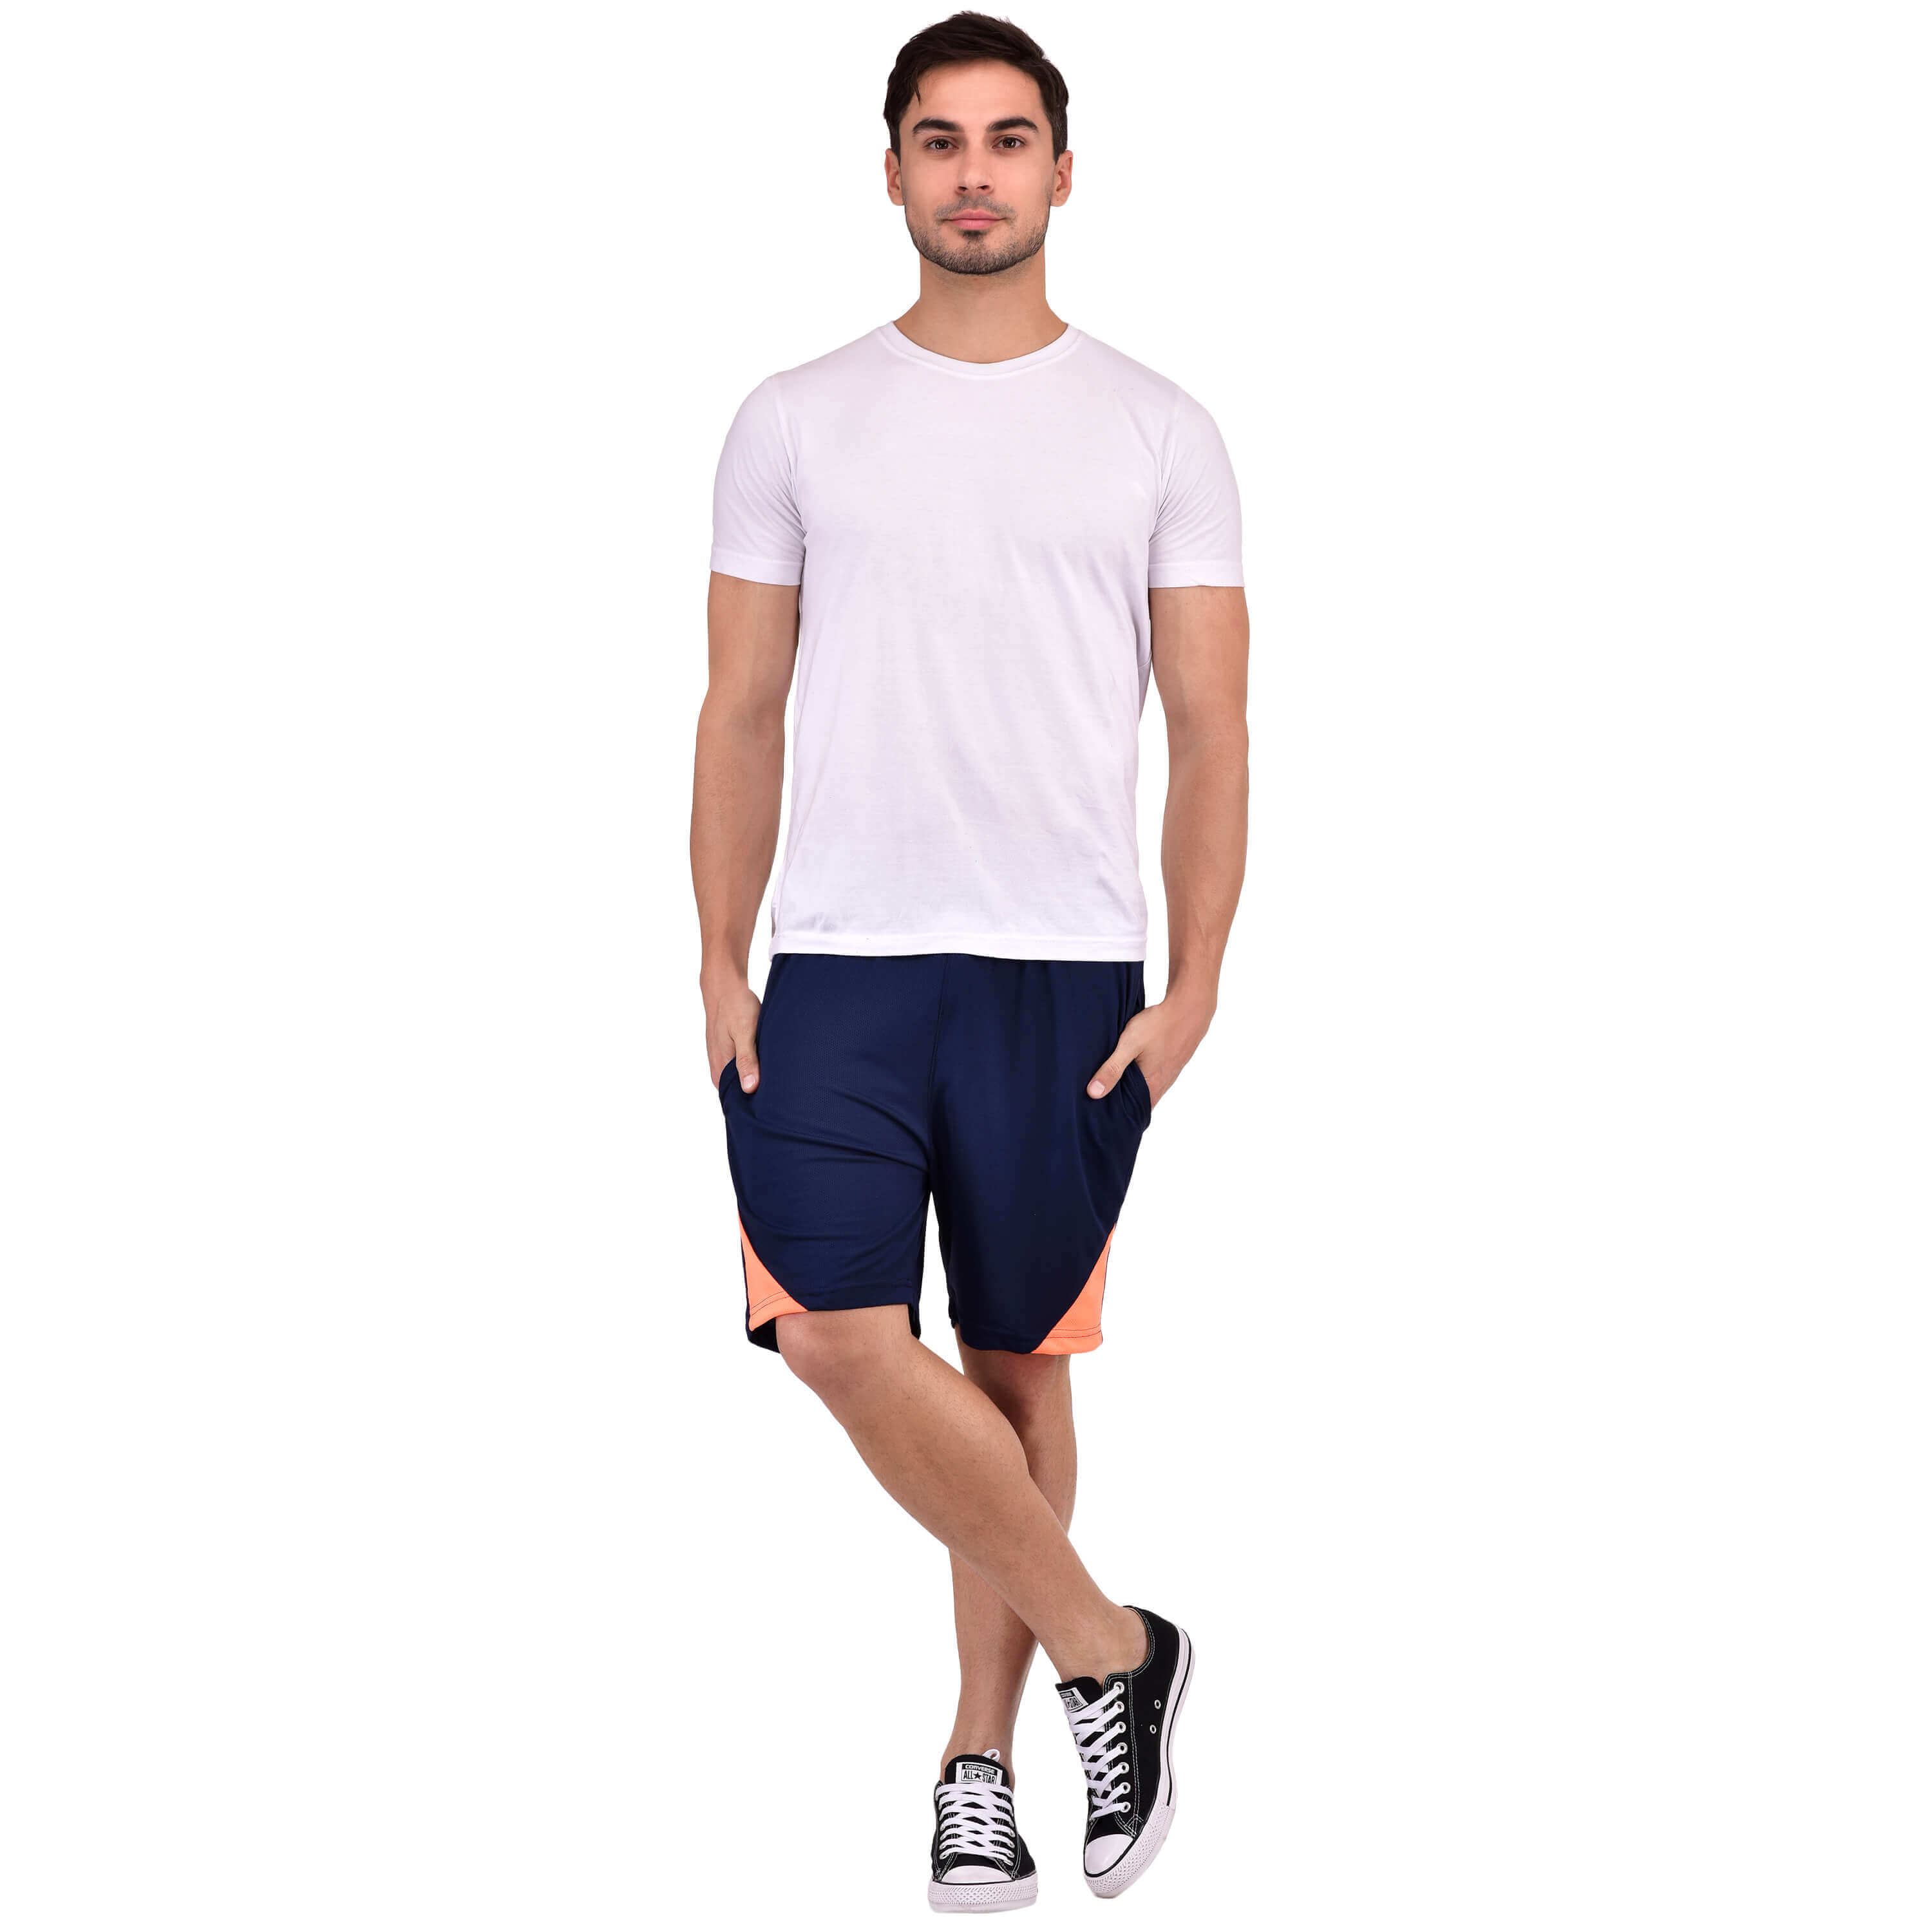 Cotton T Shirts Manufacturers in Ajmer